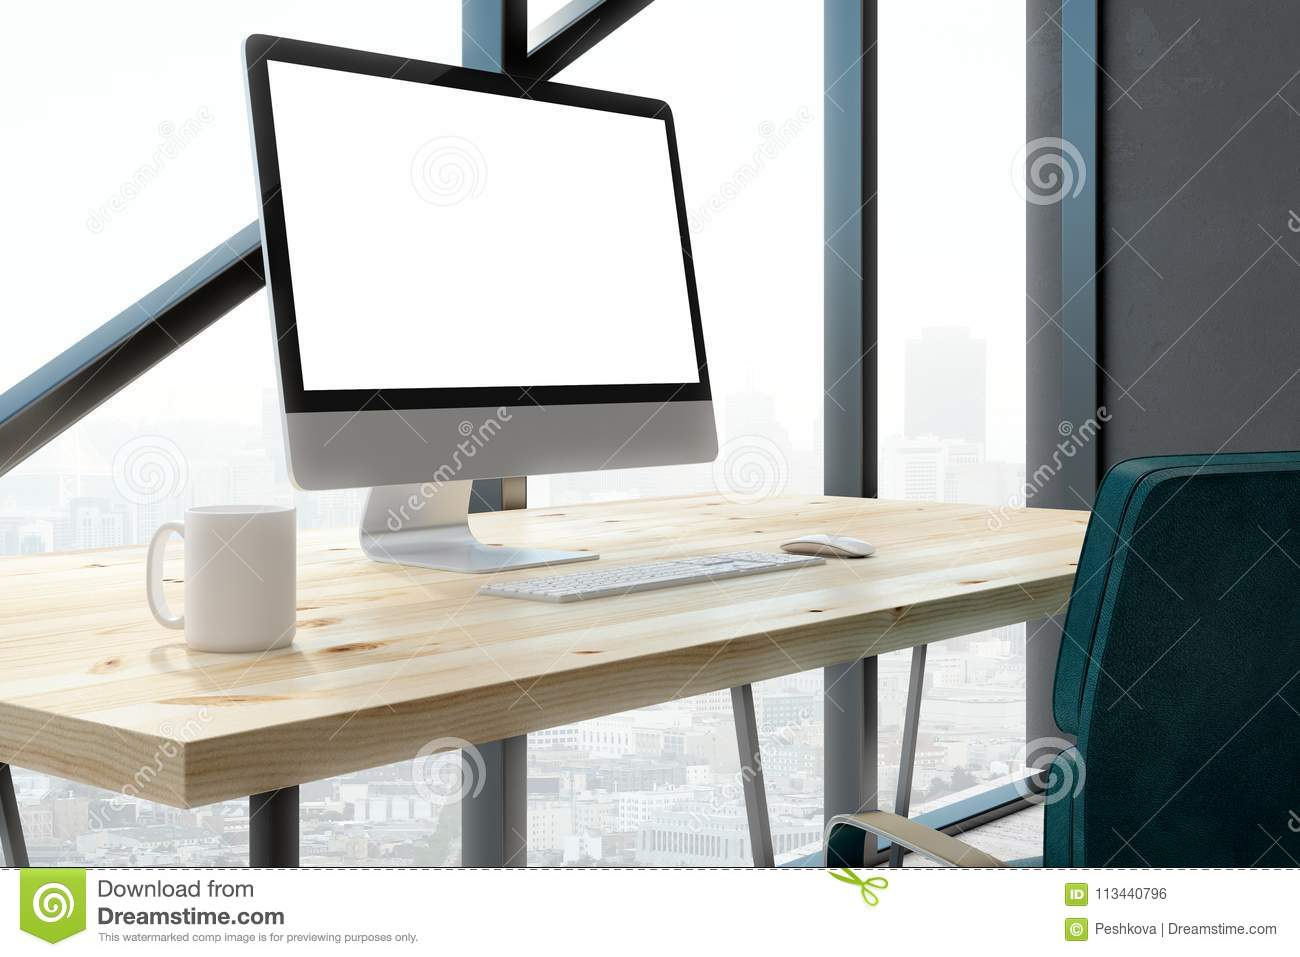 Contemporary Office With Empty White Computer Screen Stock Photo Image Of Real Office 113440796